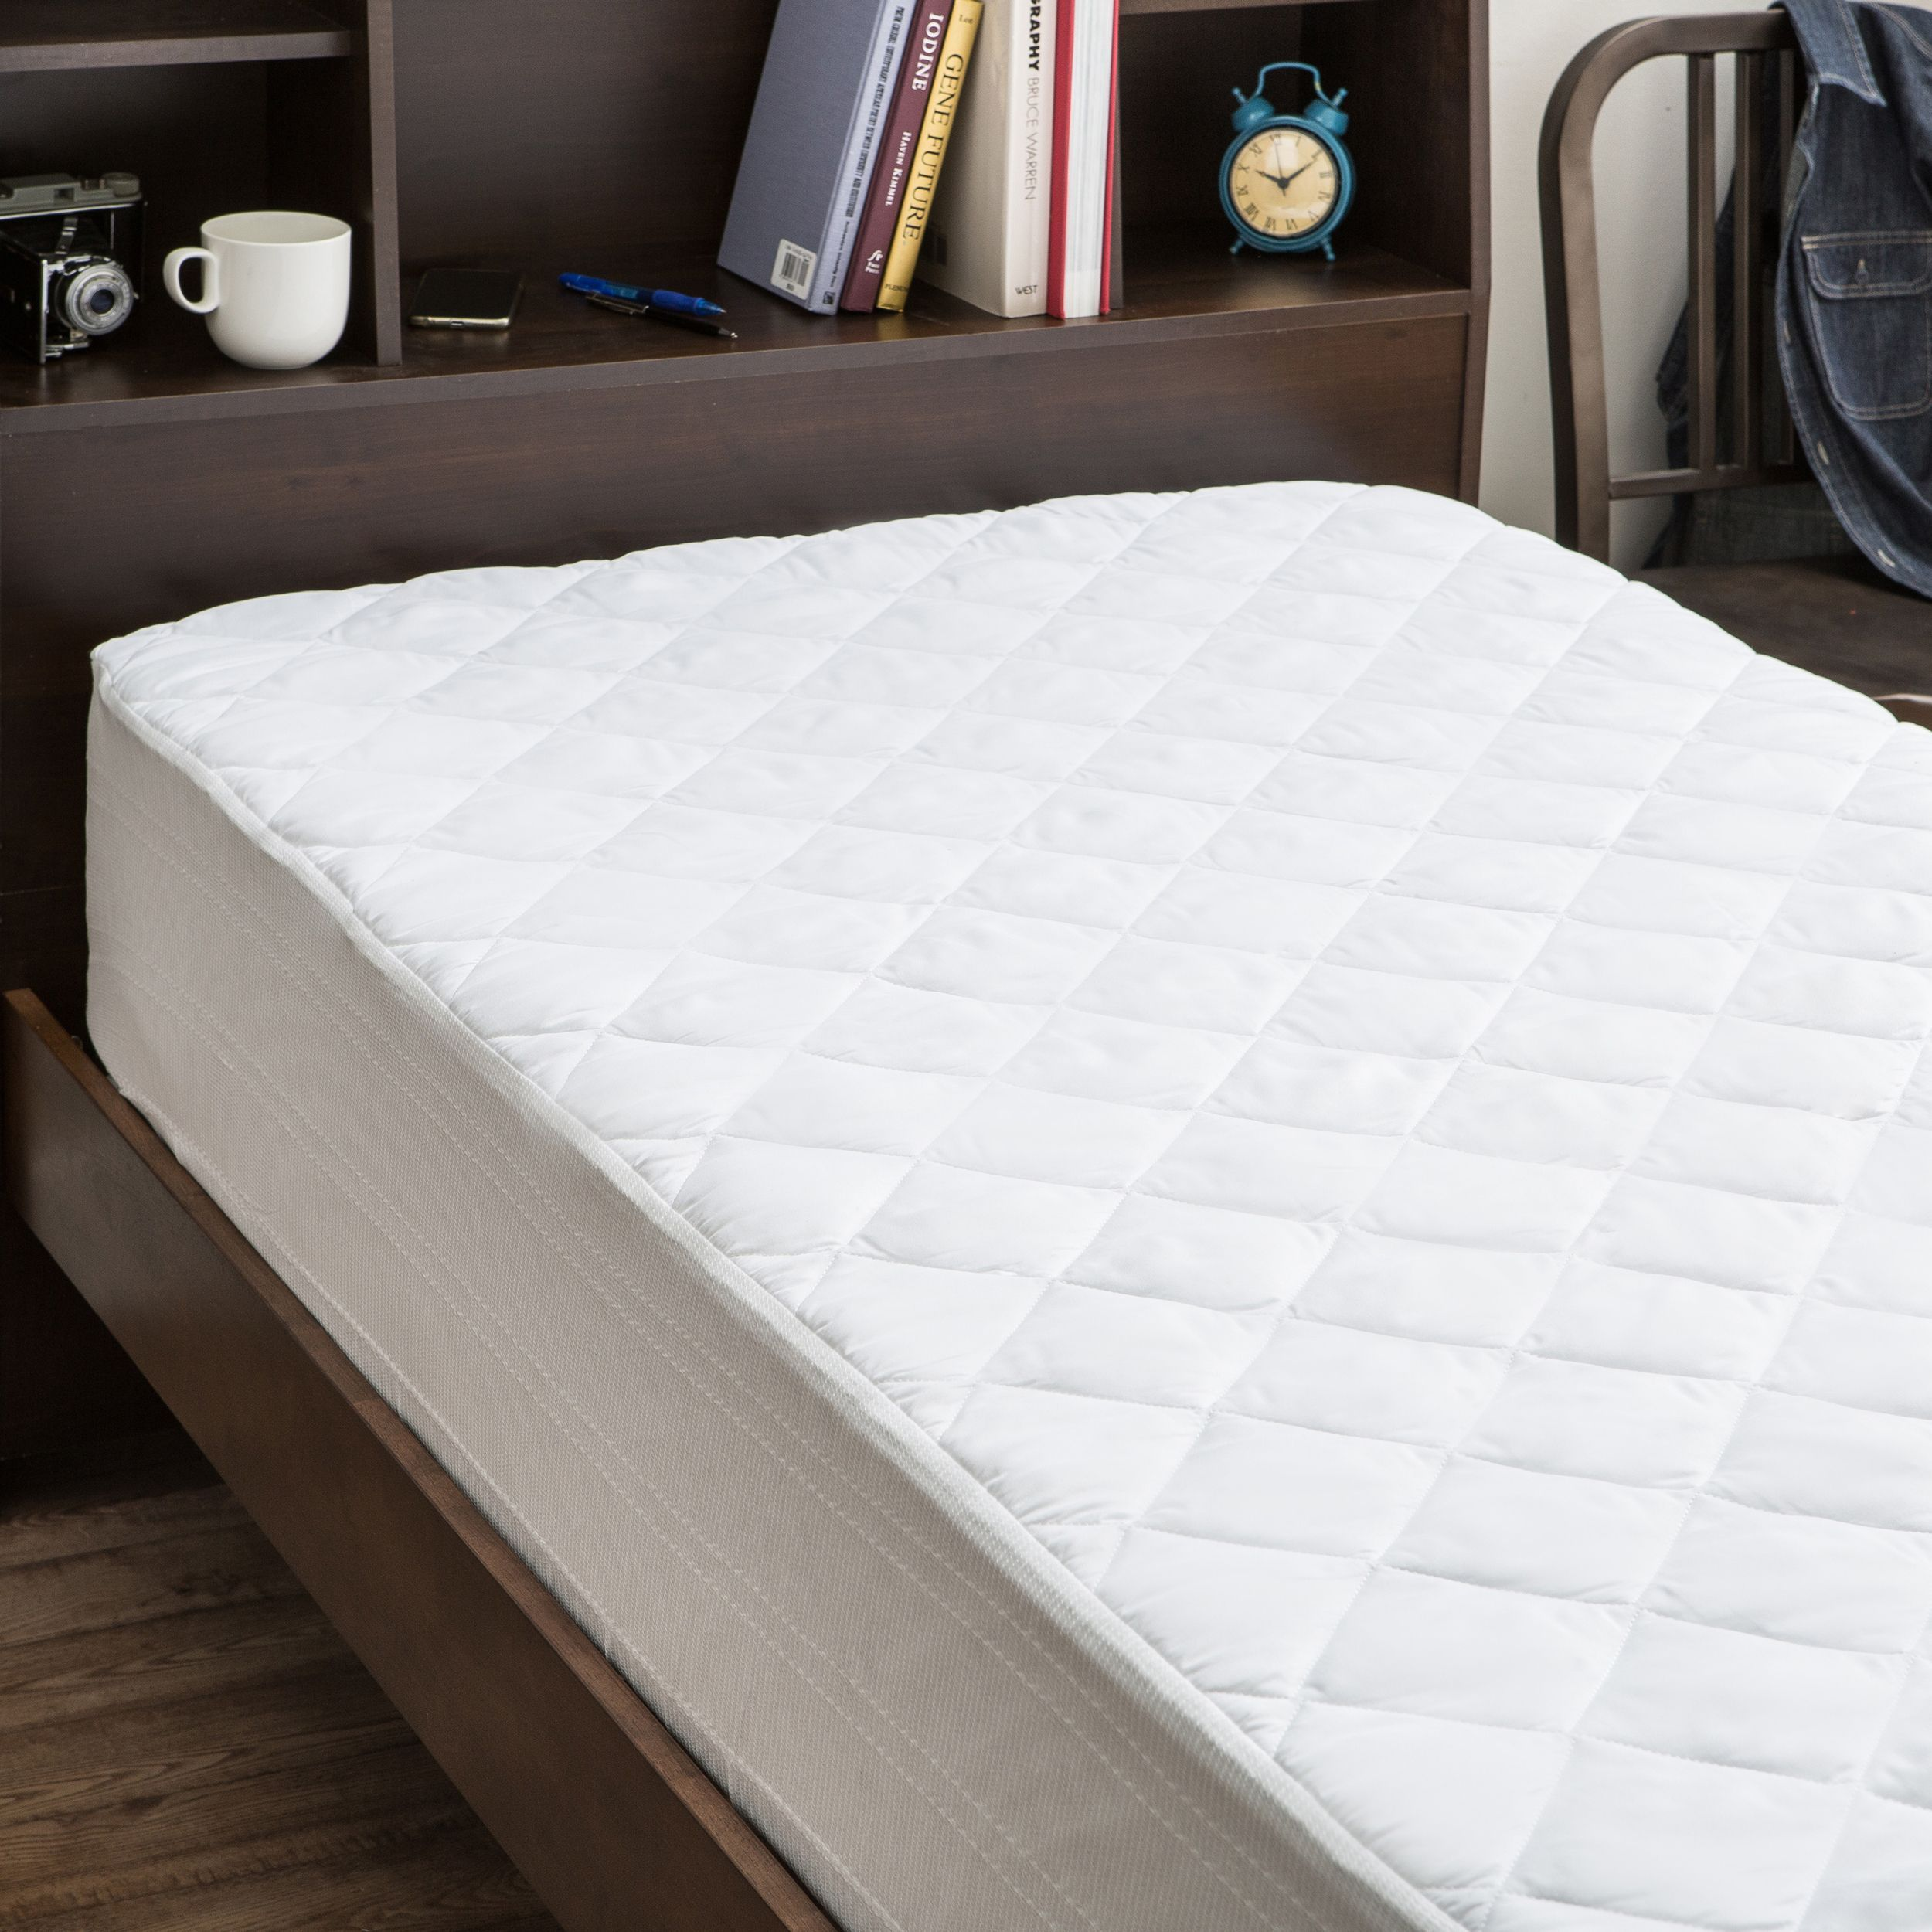 over overstock orders bath mattress shipping beautyrest free on bedding product protector pad king waterproof